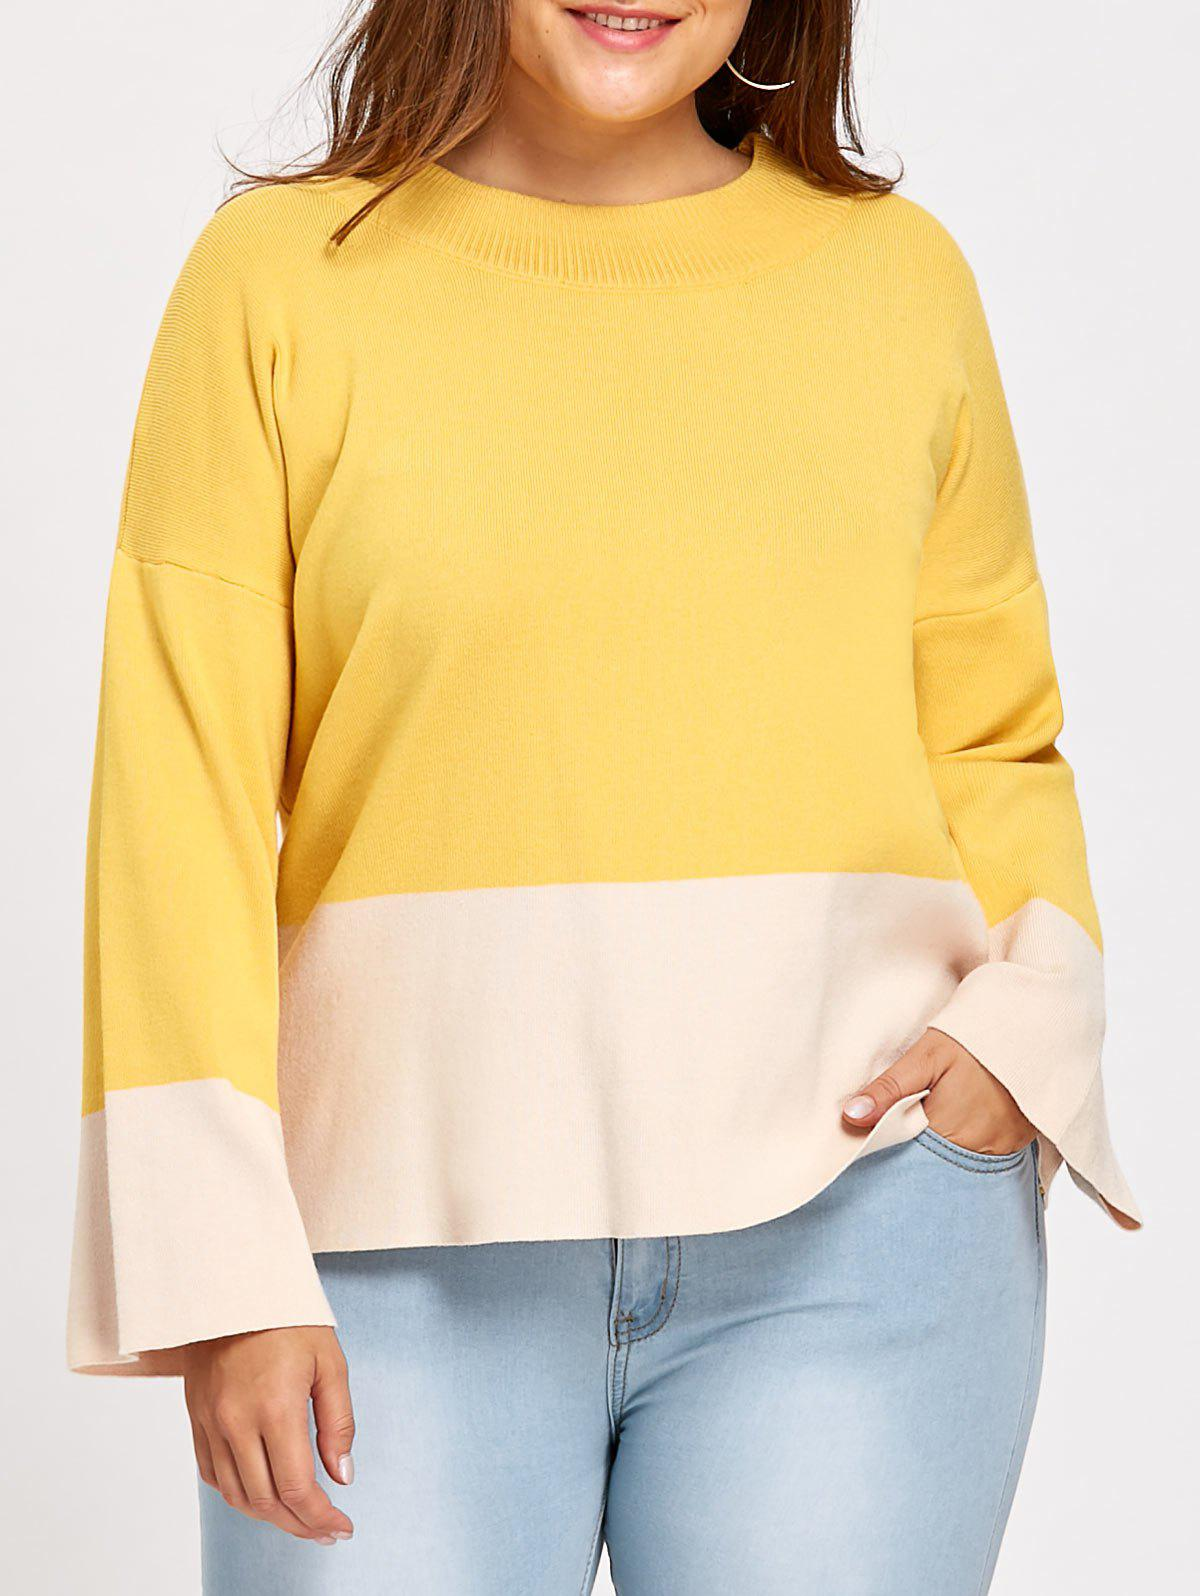 Color Block Plus Size Mock Neck SweaterWOMEN<br><br>Size: XL; Color: YELLOW; Type: Pullovers; Material: Cotton,Polyester; Sleeve Length: Full; Collar: High Collar; Style: Fashion; Season: Fall,Winter; Pattern Type: Others; Weight: 0.5200kg; Package Contents: 1 x Sweater;